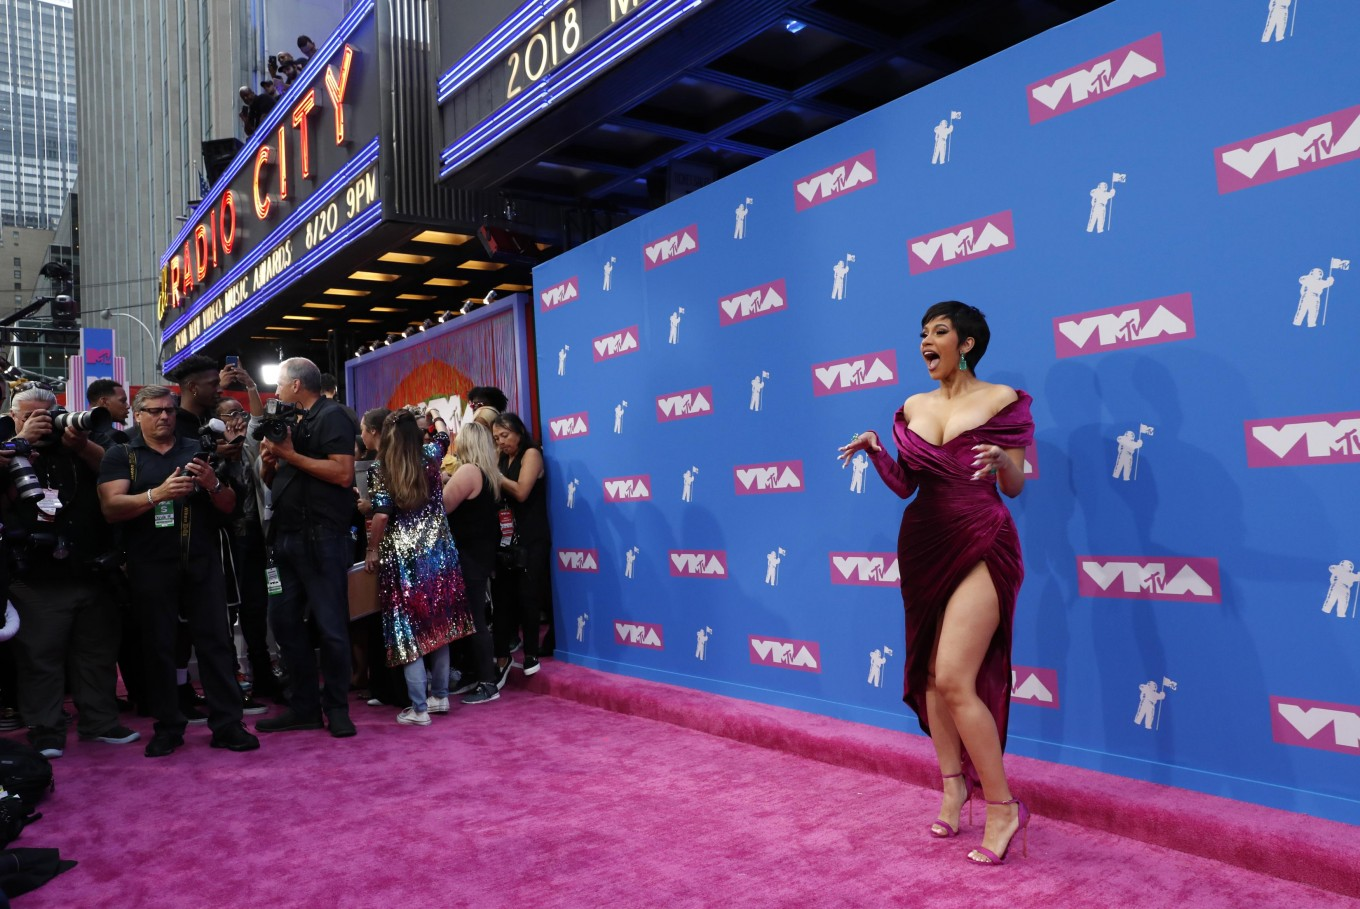 Cardi B opens MTV awards set to pay R-E-S-P-E-C-Ts to Aretha